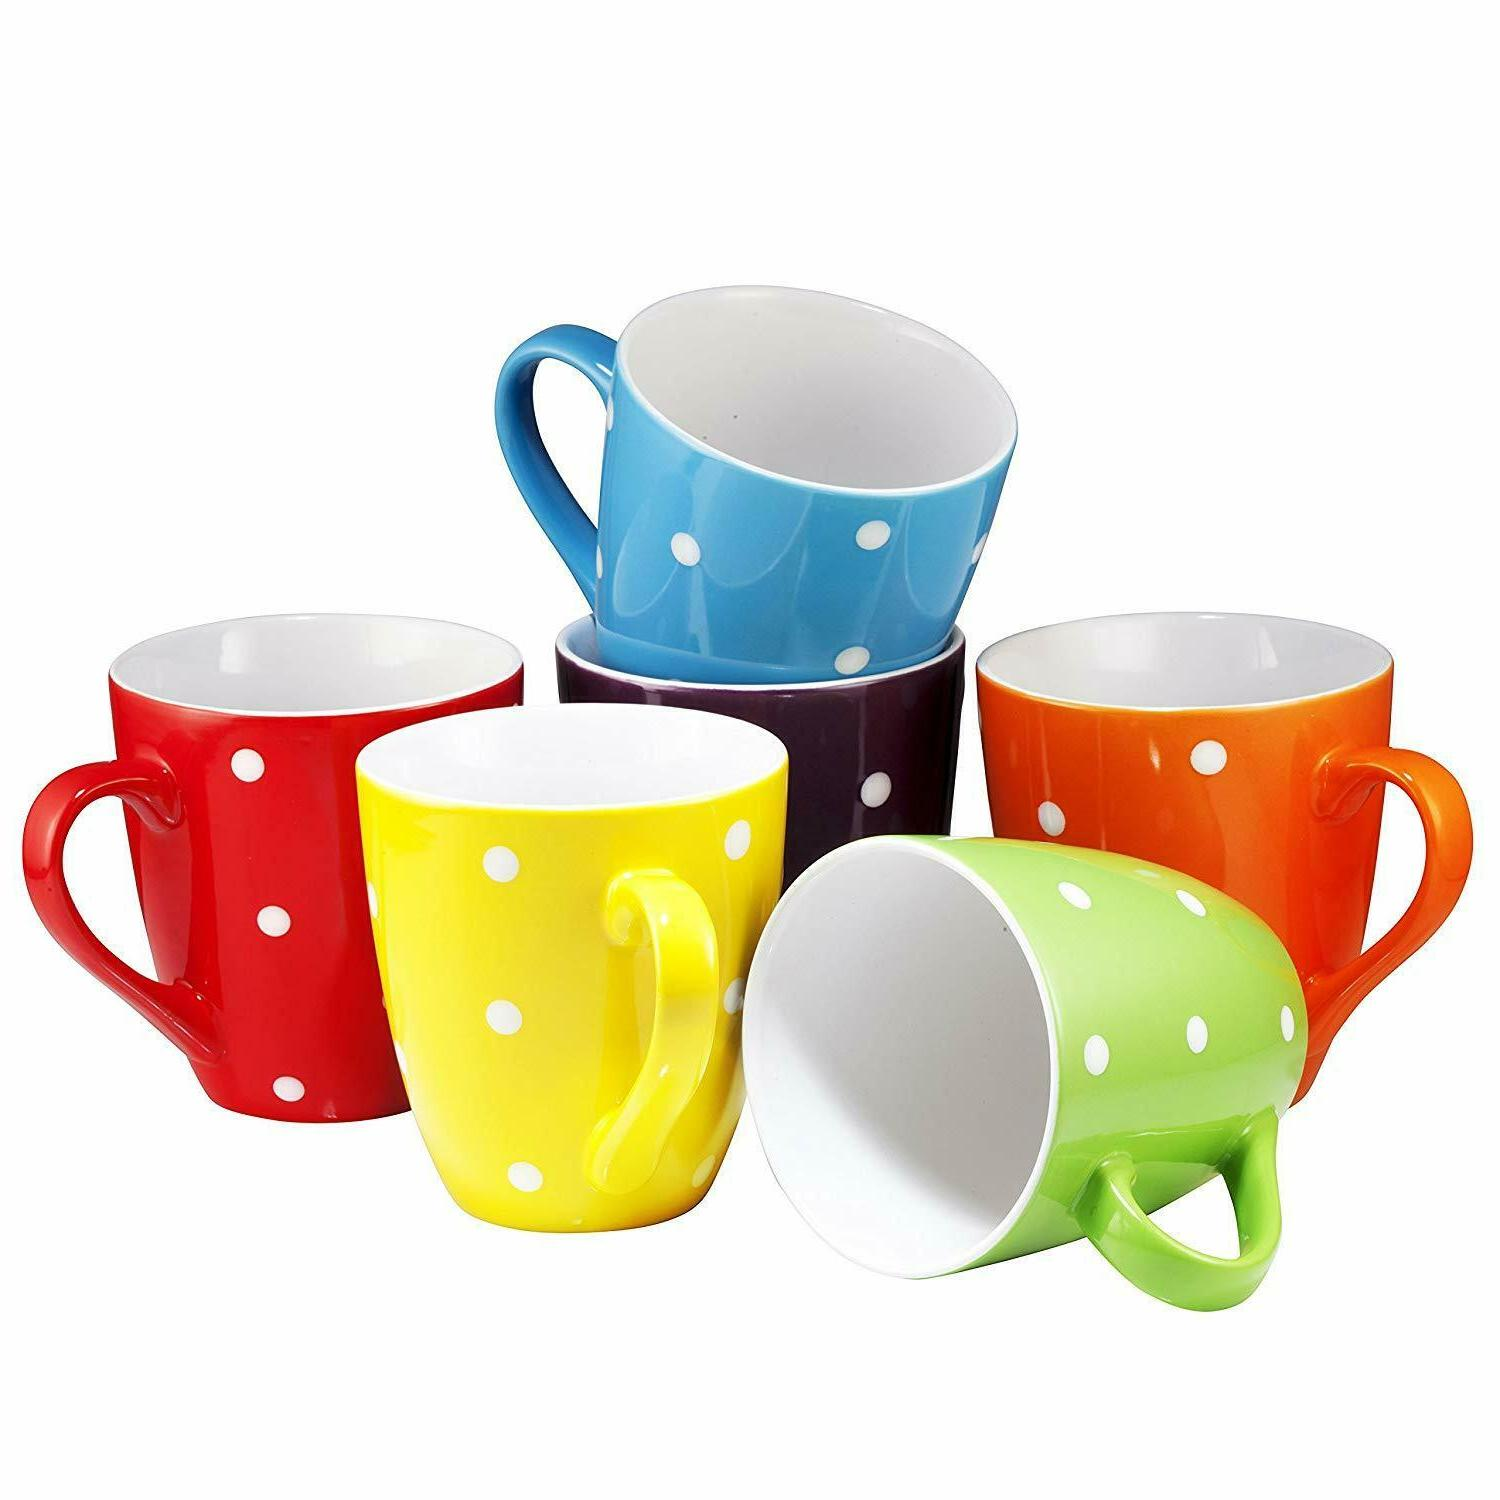 Restaurant Coffee Mugs Set of 6 Dot Ceramic Safe New